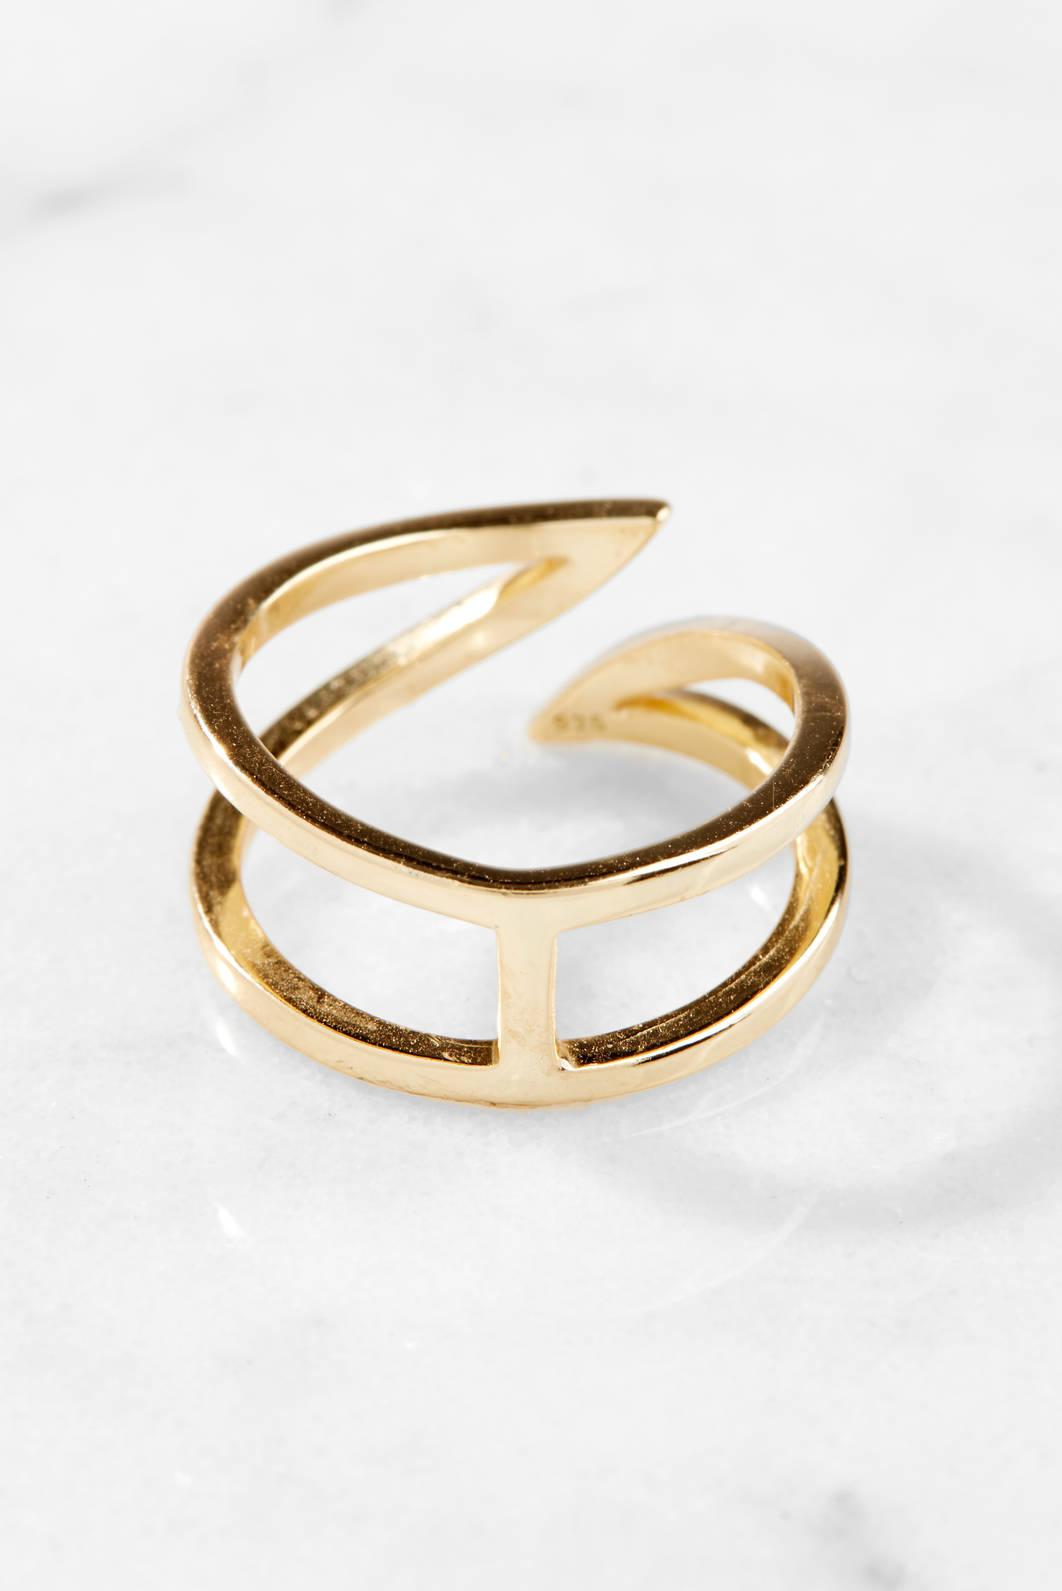 Shashi Pointed Ring Gold 1 Size e21d1n